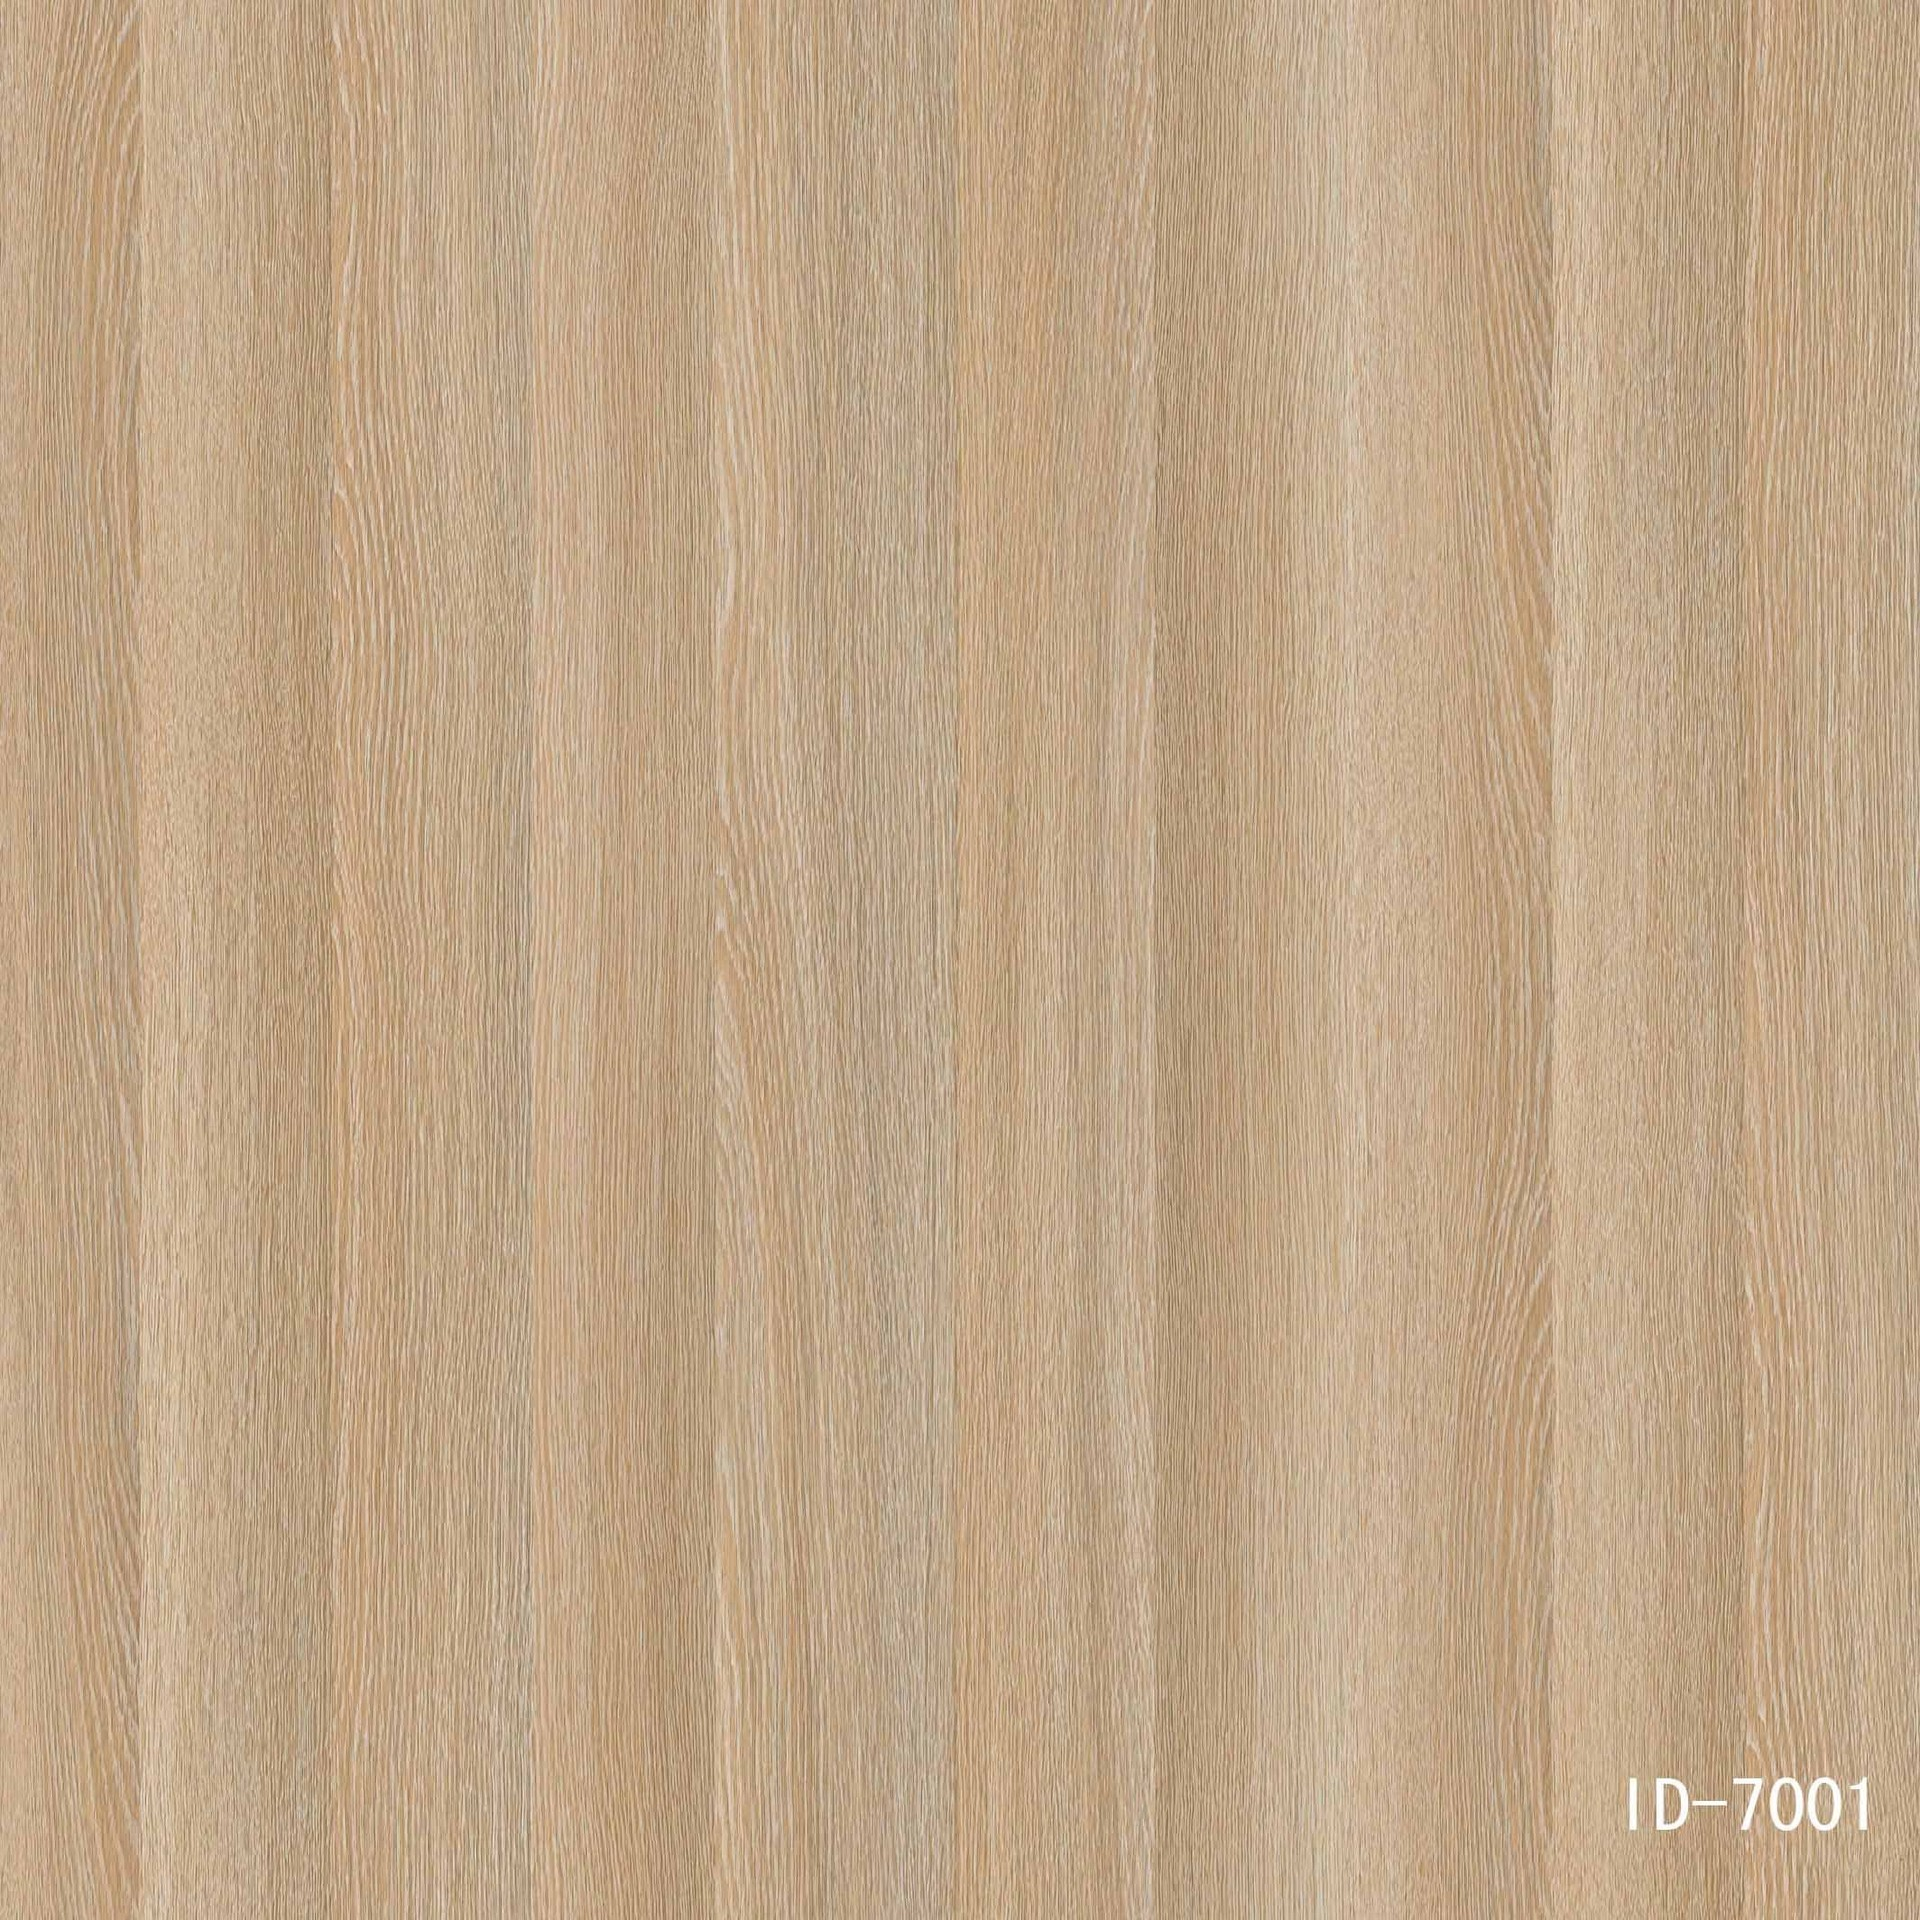 ID-7001 Oak up to 7 feet